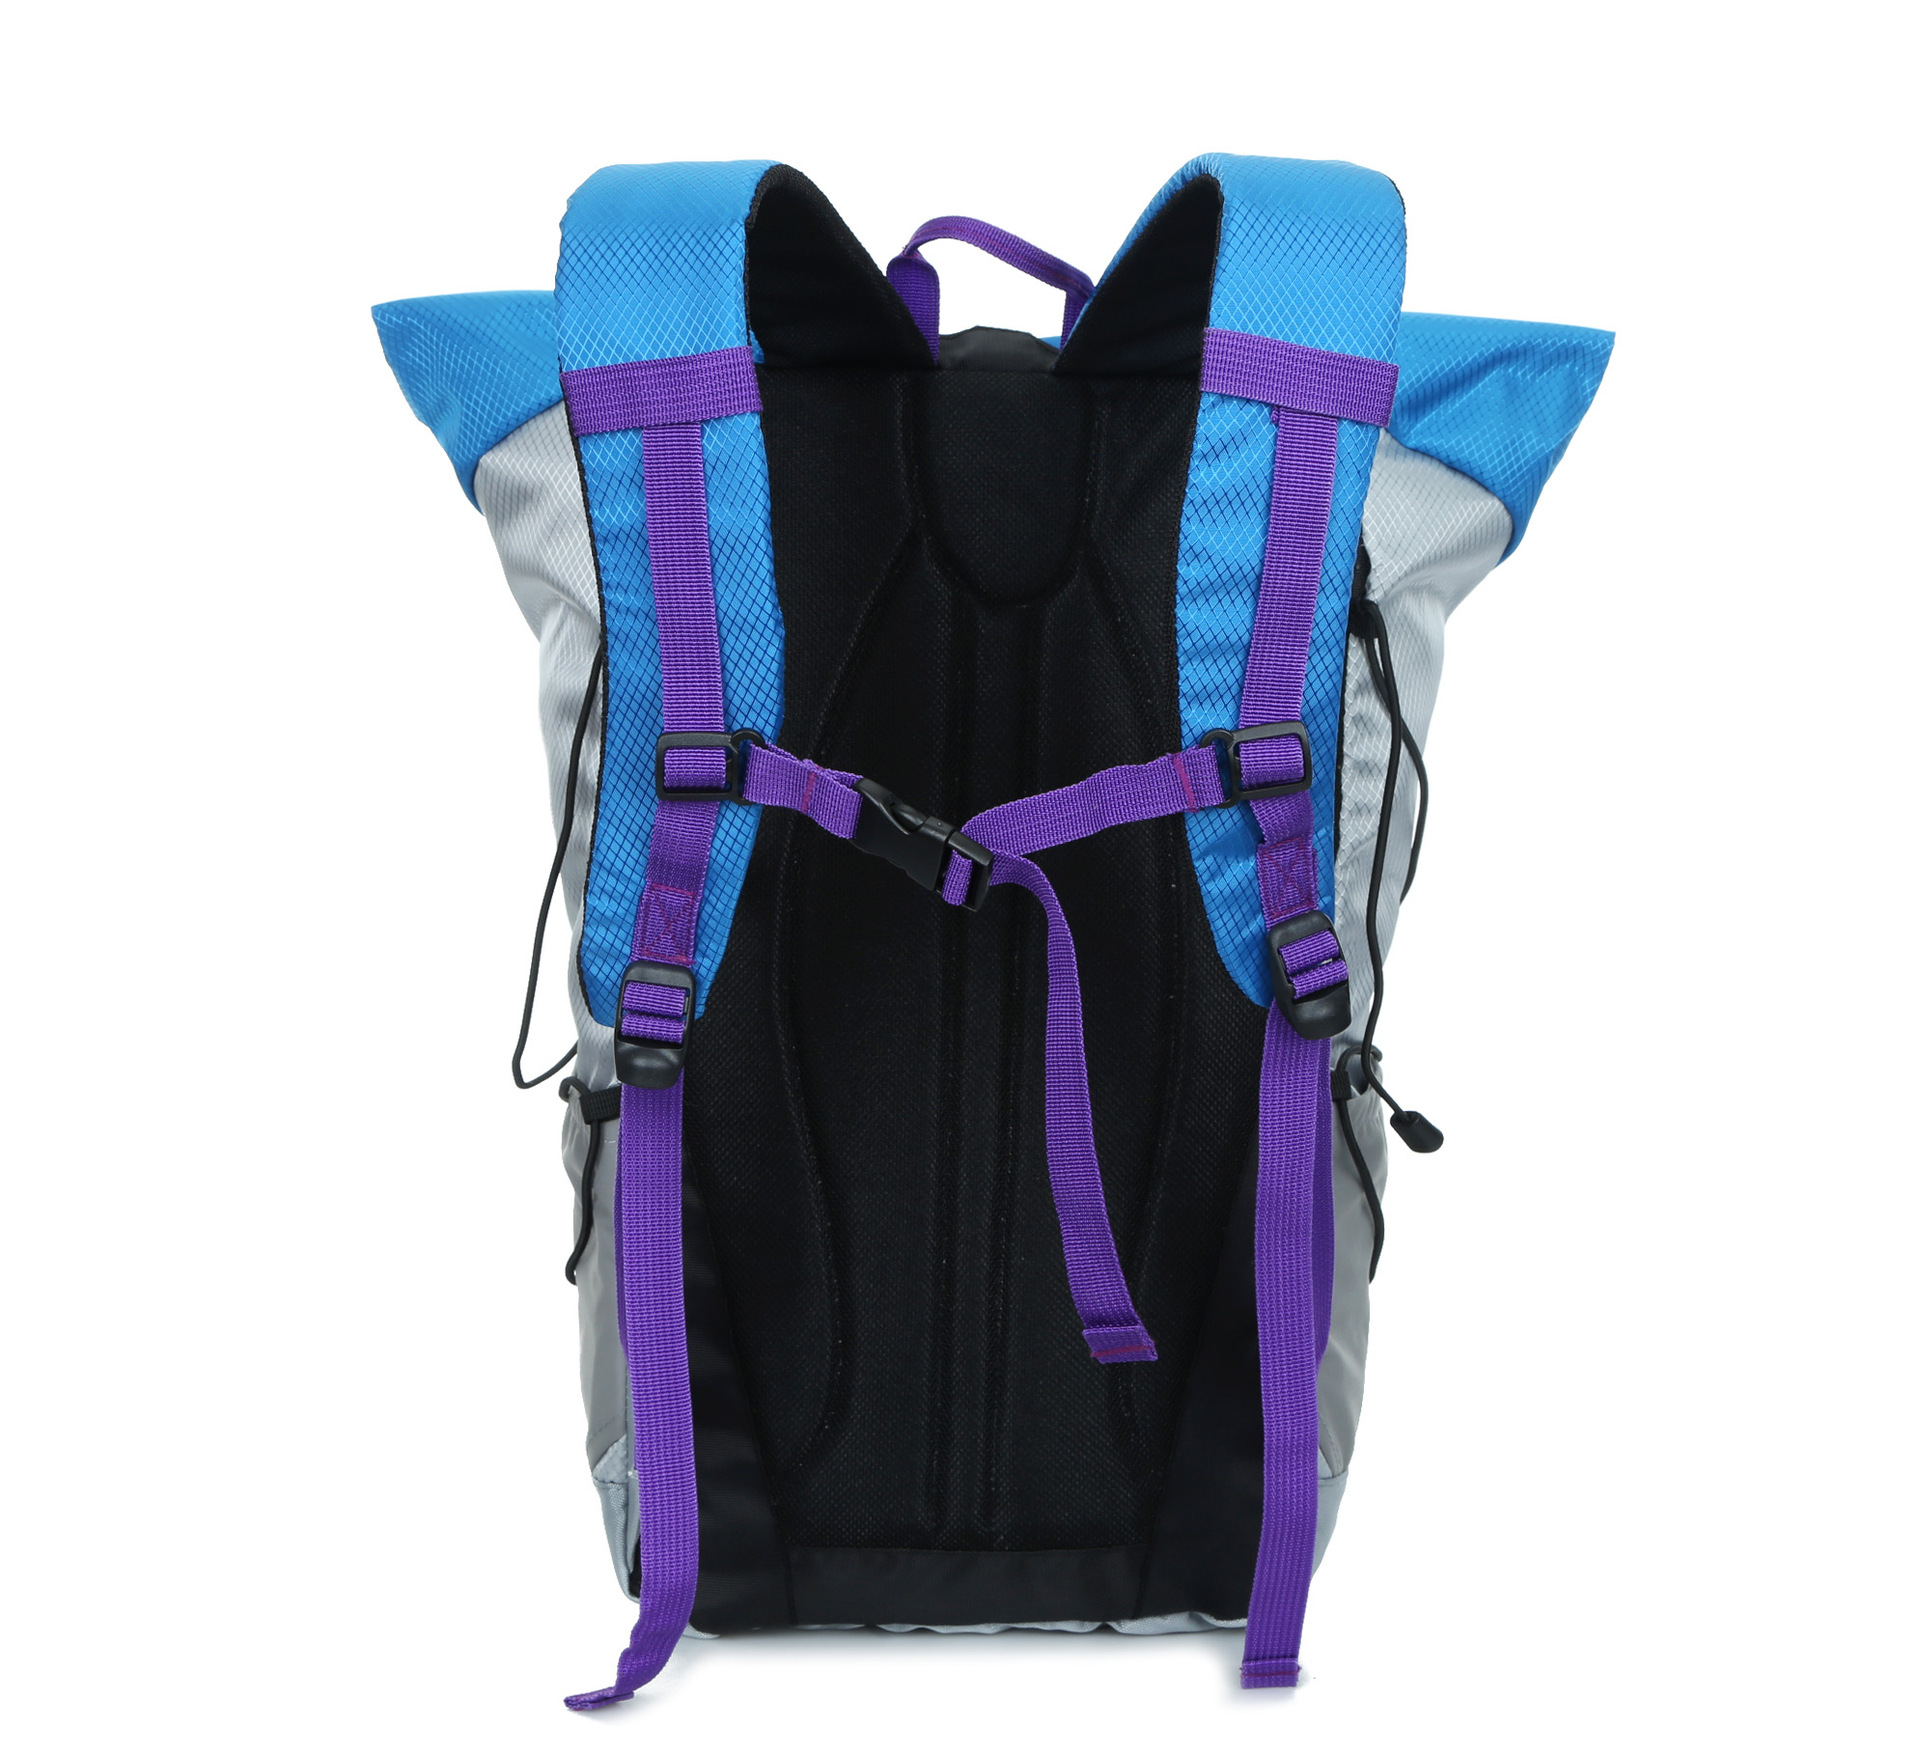 Large-Volume Fashion & Sports Riding Backpack Men And Women Outdoor Light Travel Hiking Mountaineering Bag Luggage Bag